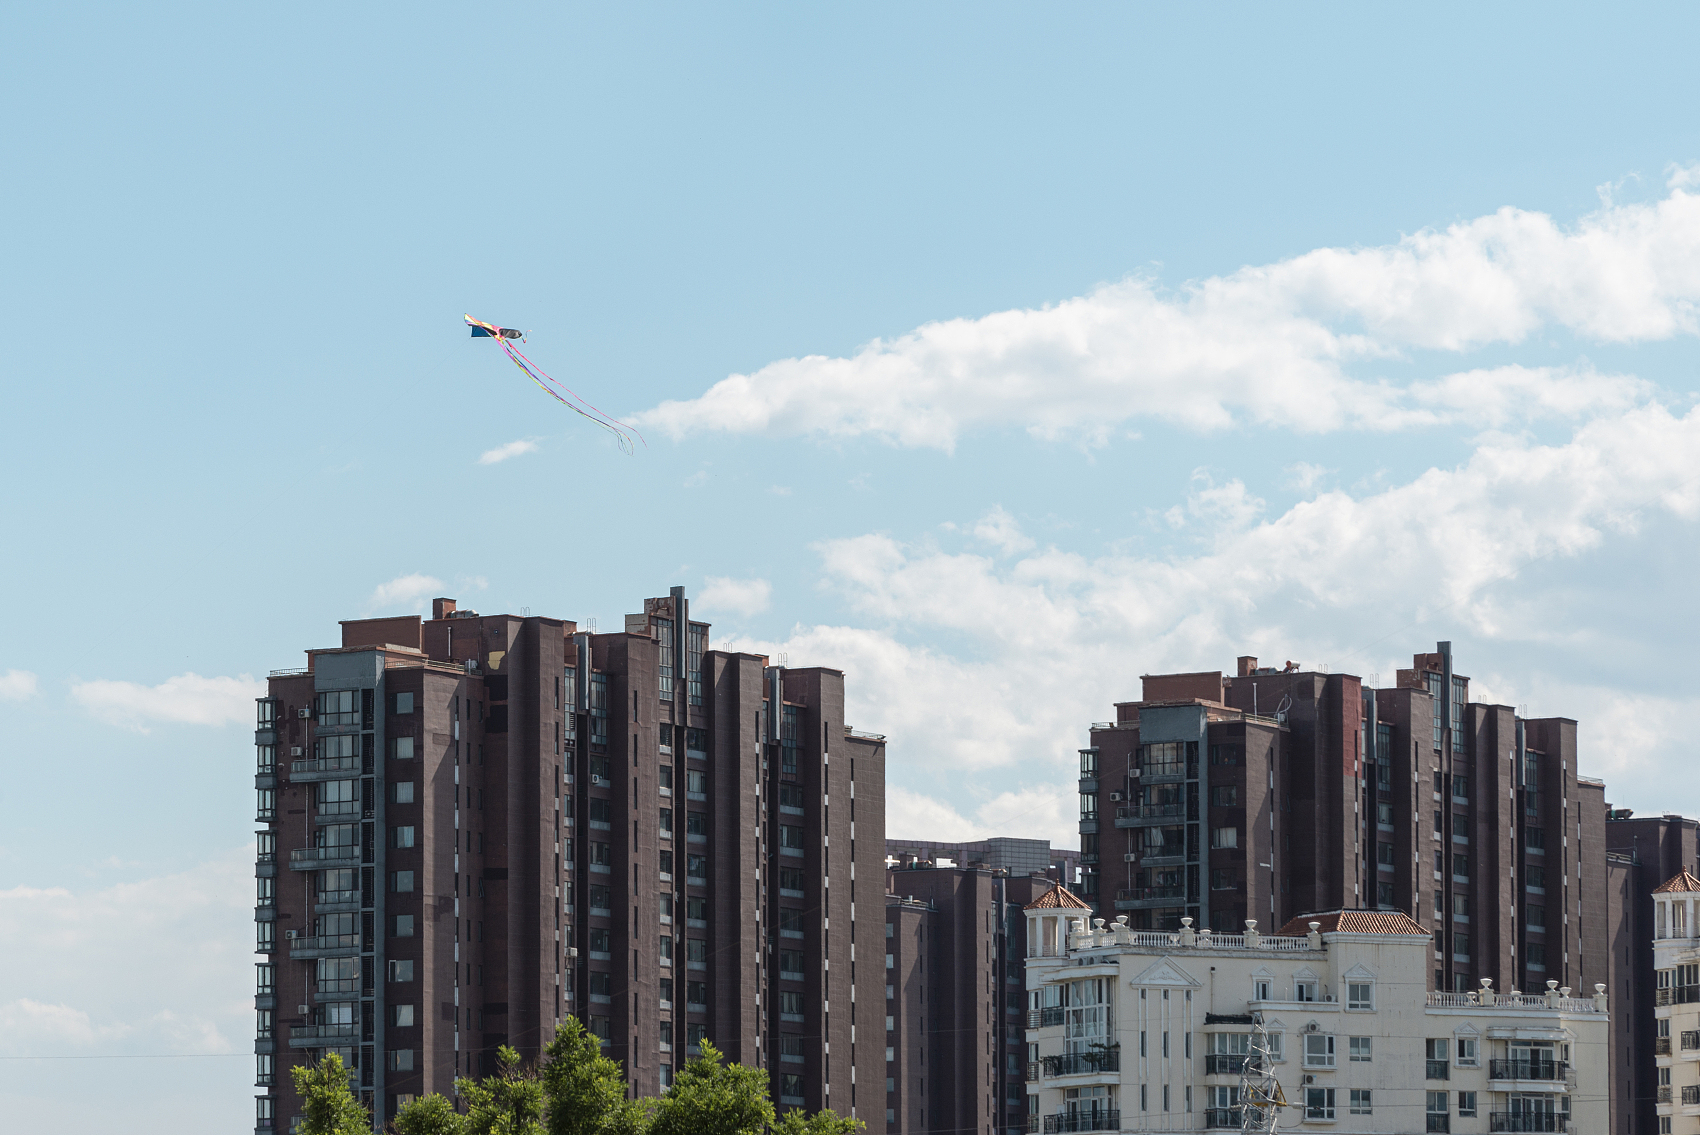 China's housing market remains stable in May with mild price increase